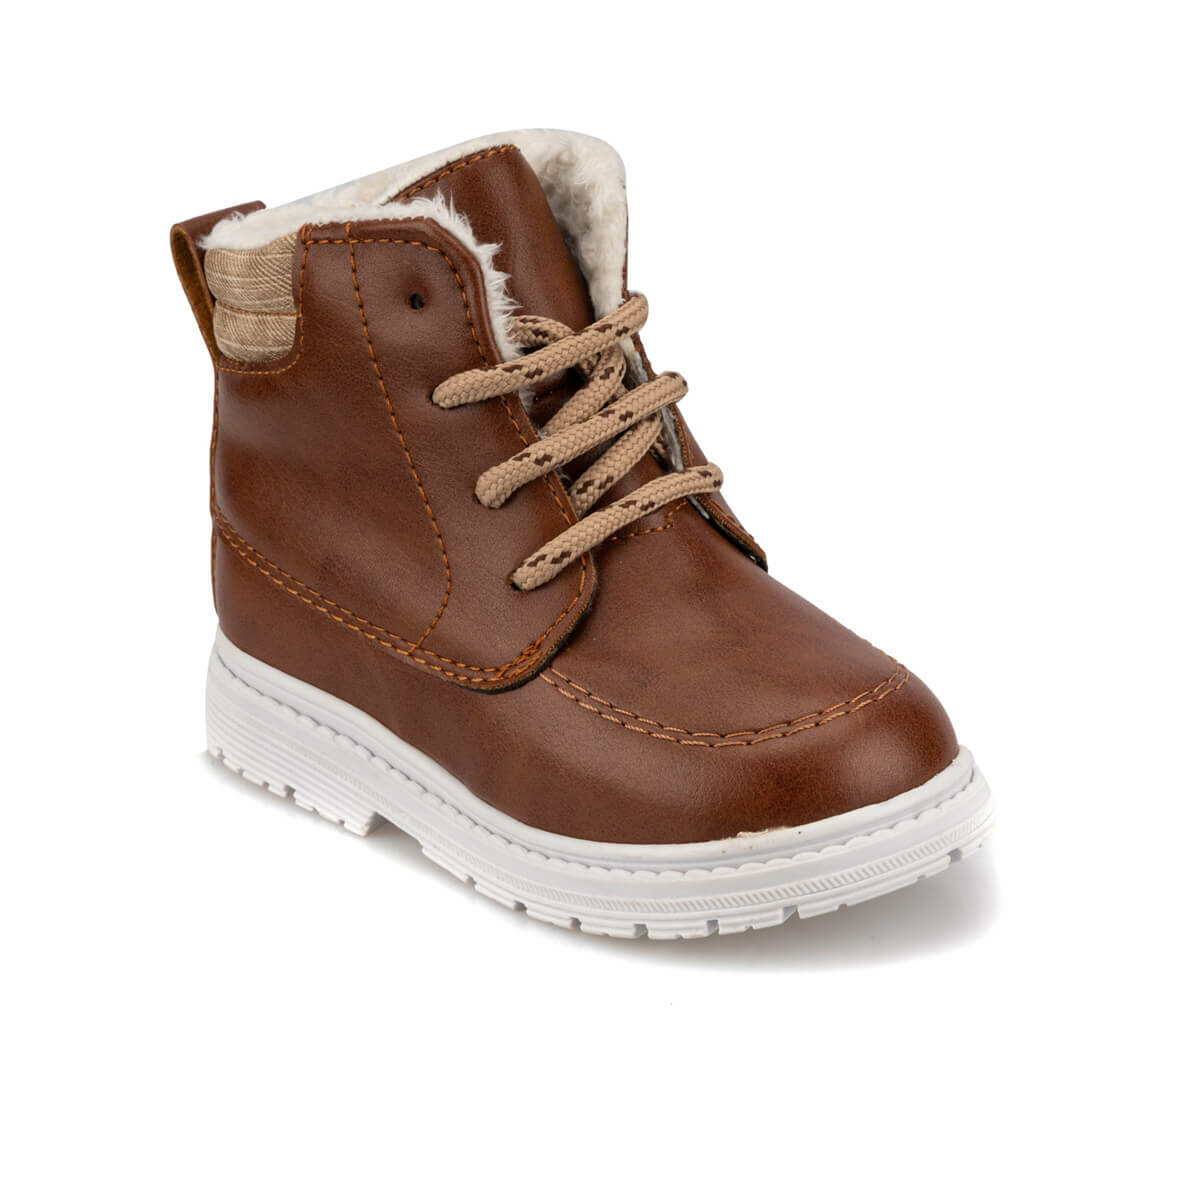 FLO 92. 509575.B Brown Male Child Boots Polaris